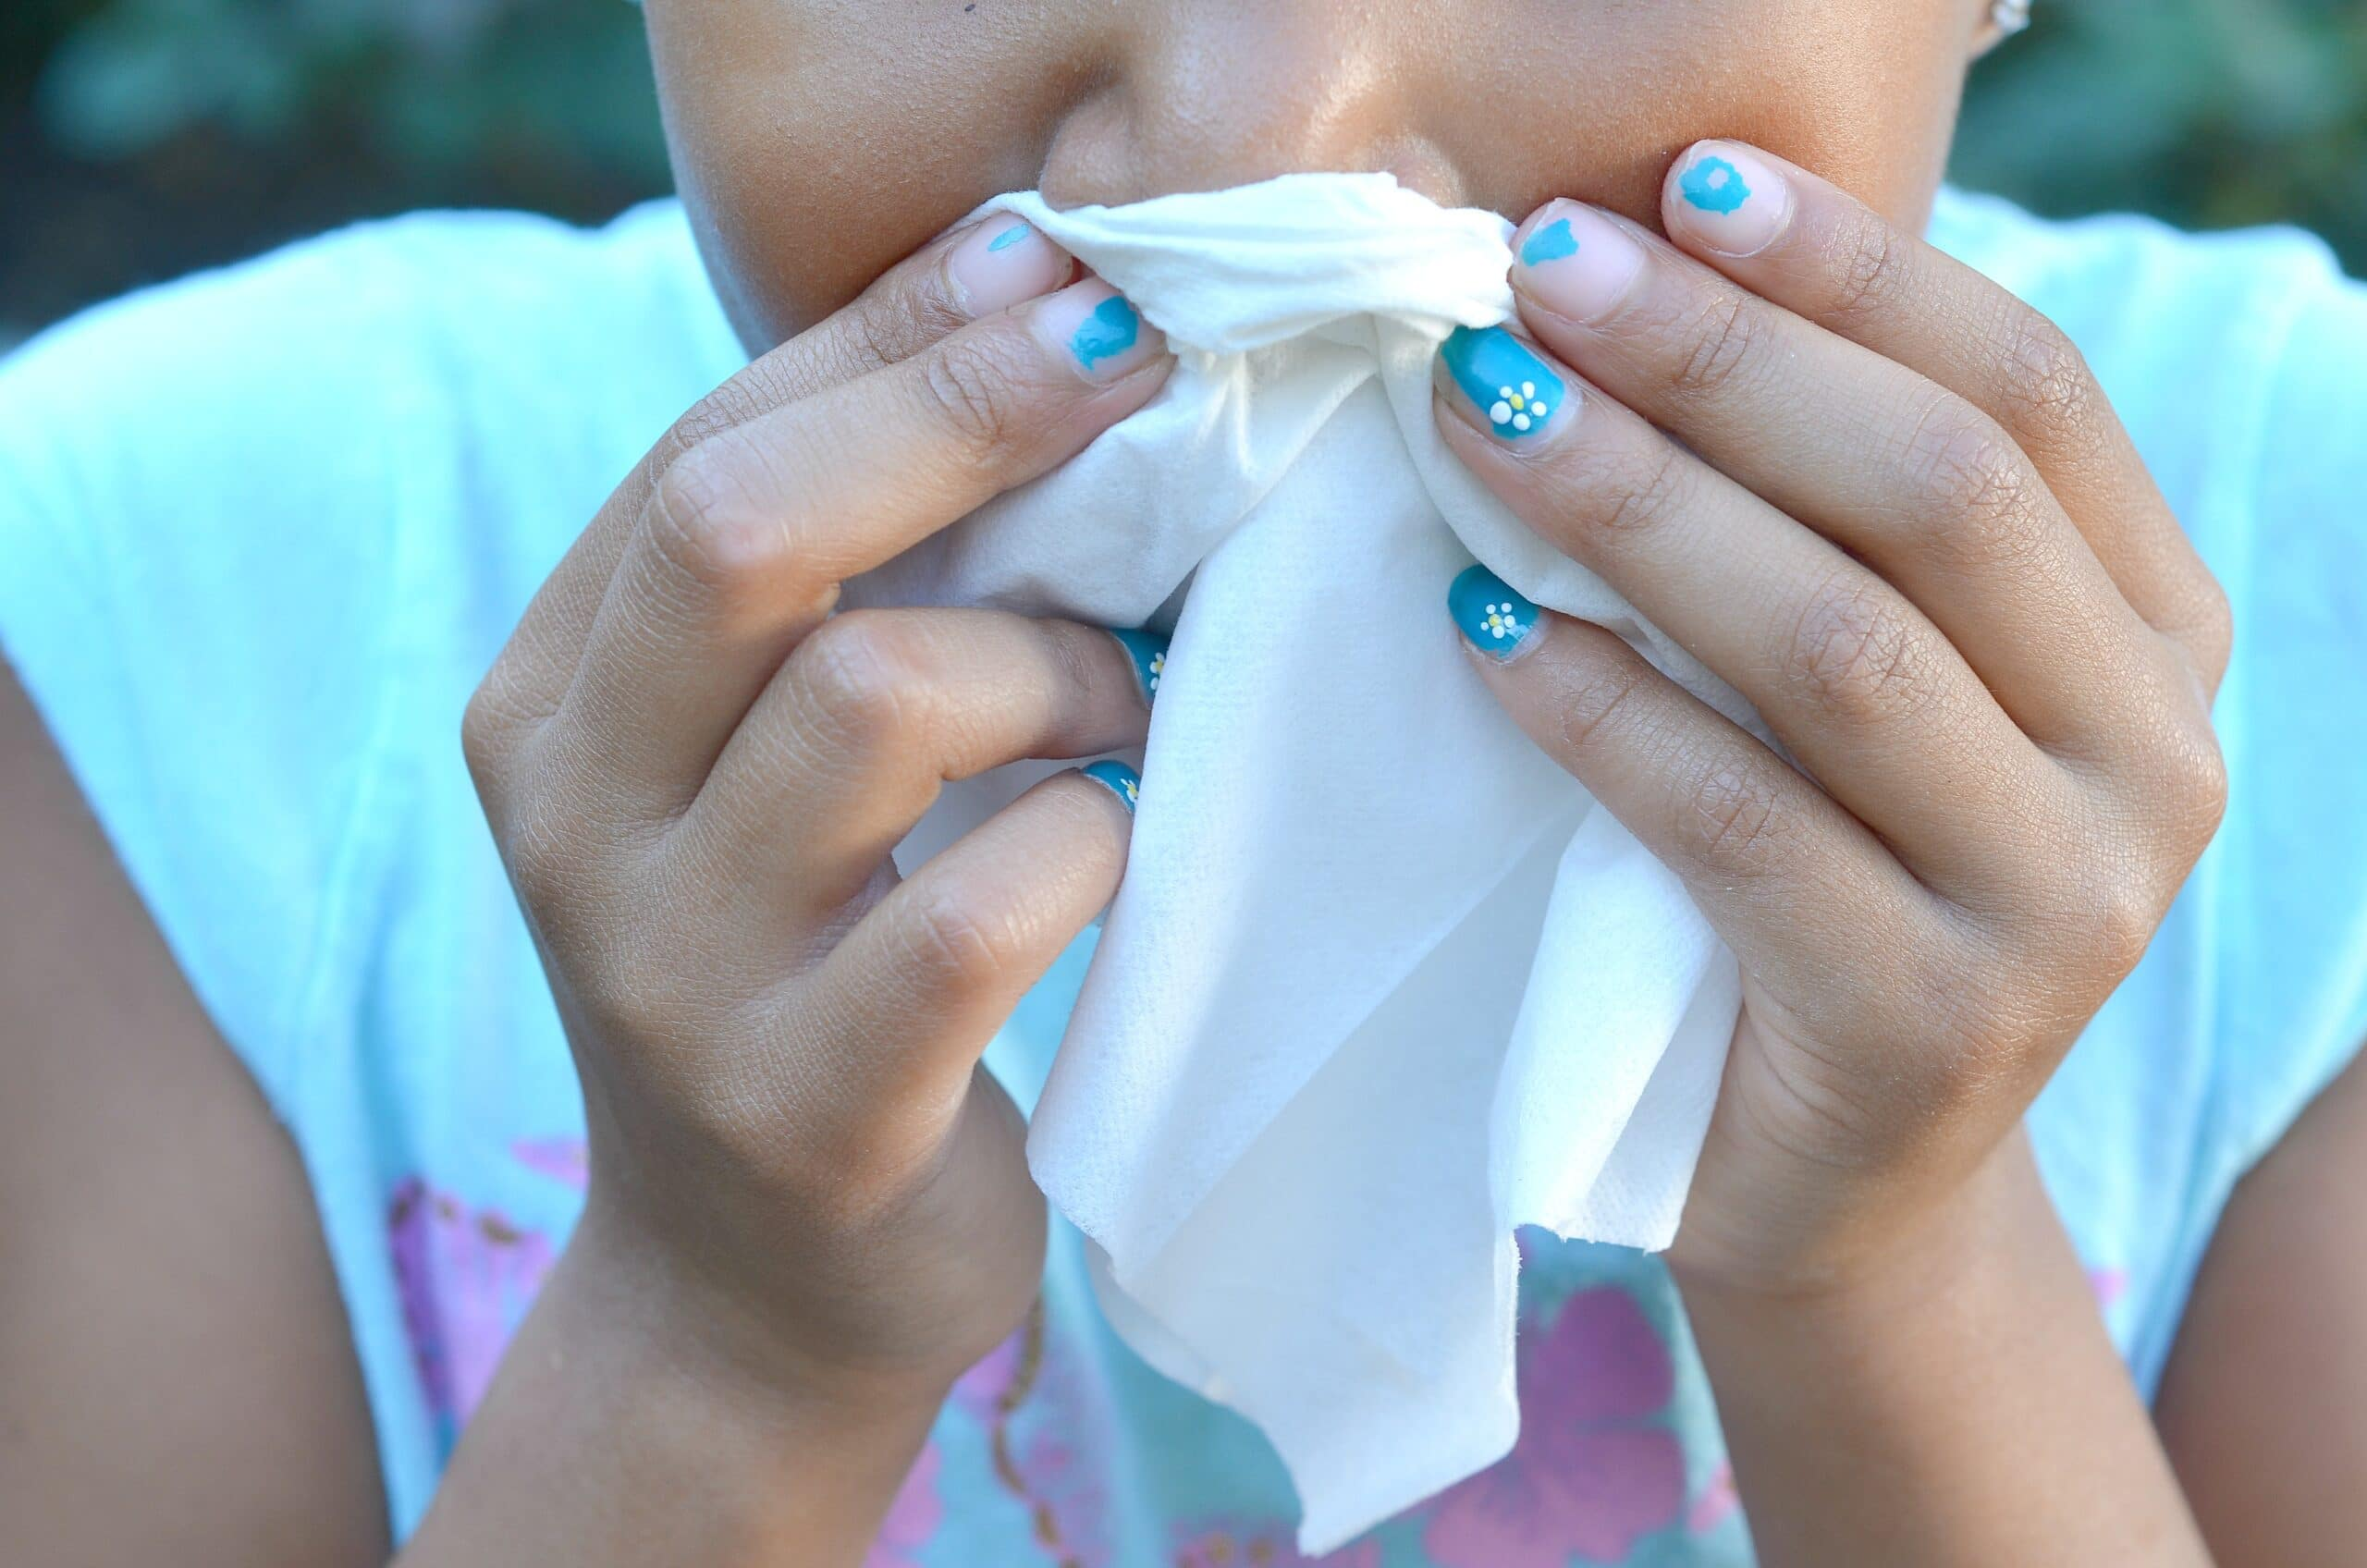 5 Tips To Battle School Cold & Flu Germs